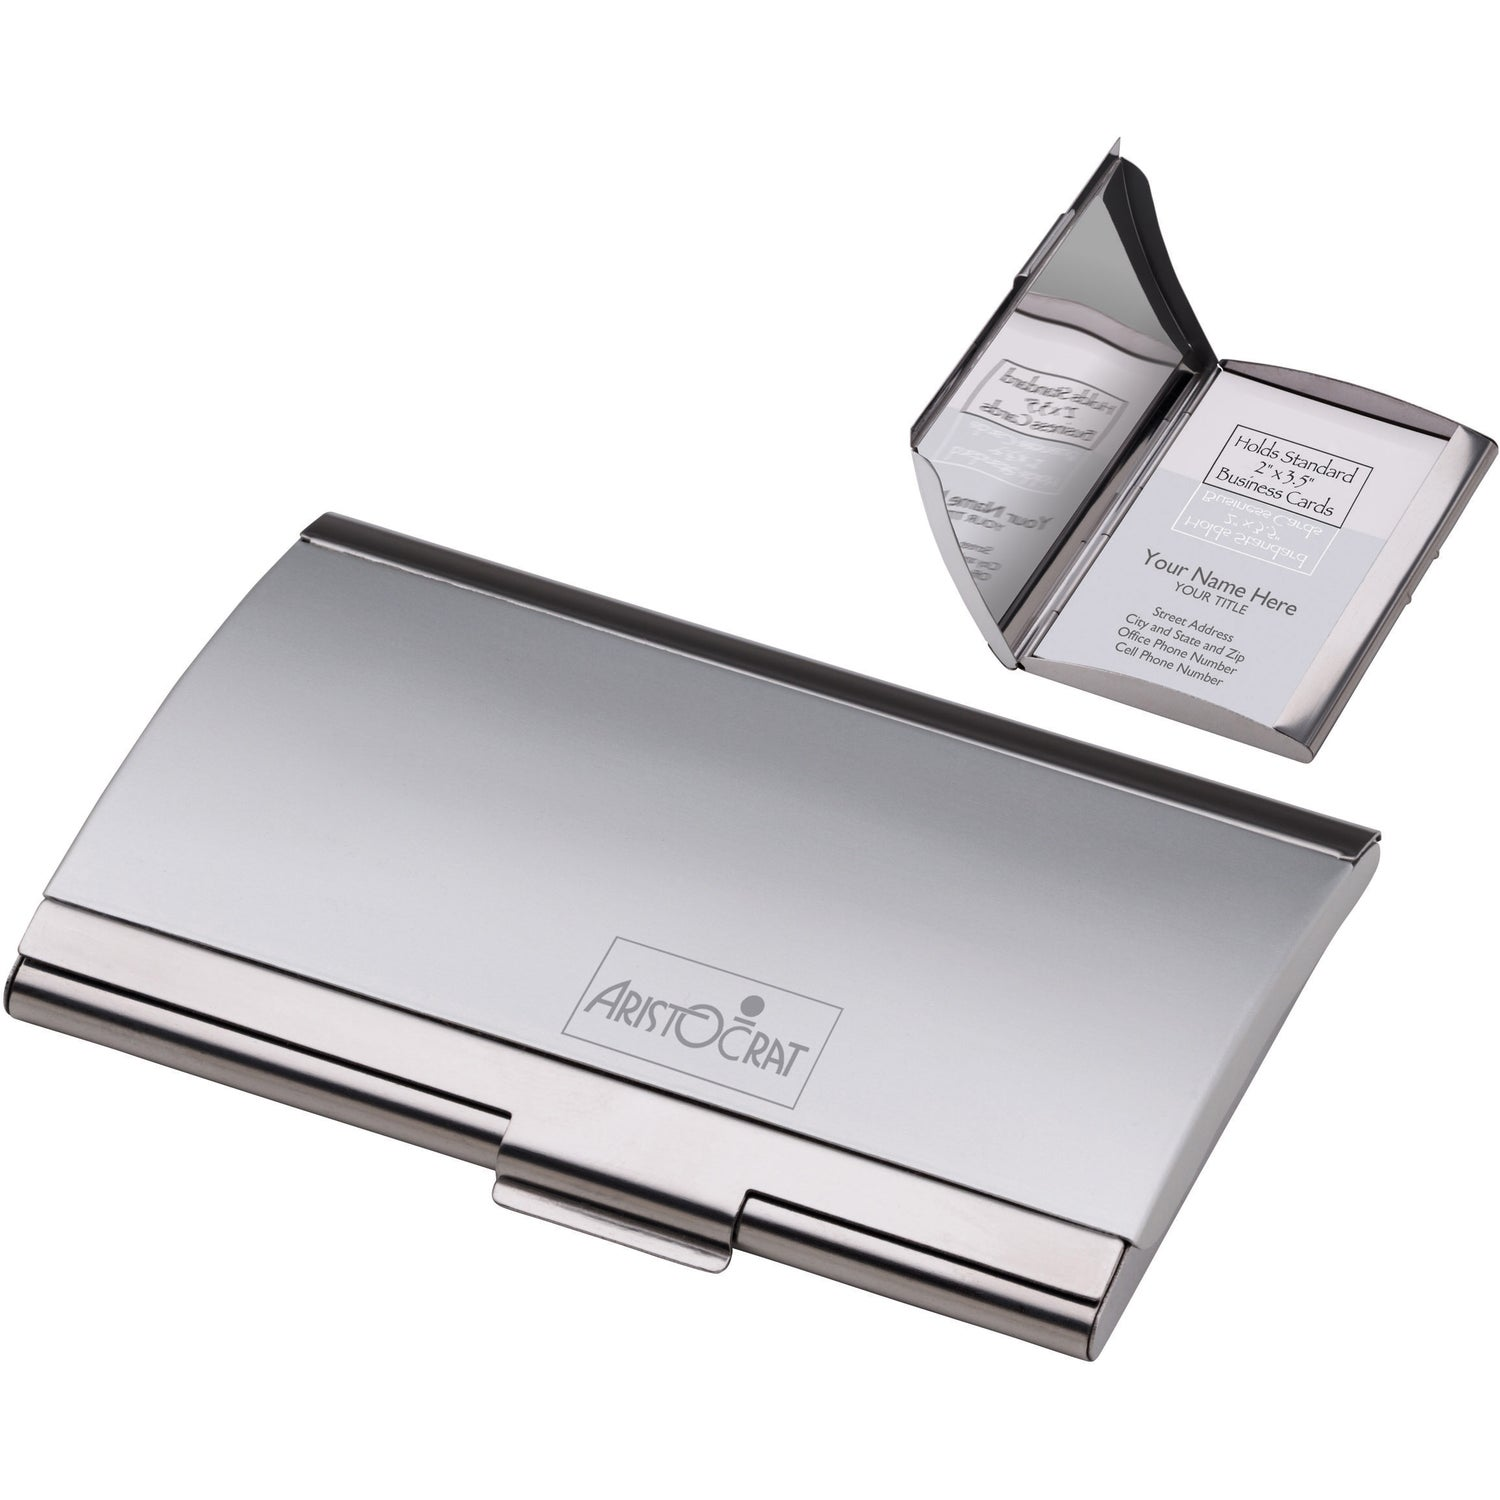 skeda i business card case - Business Card Cases